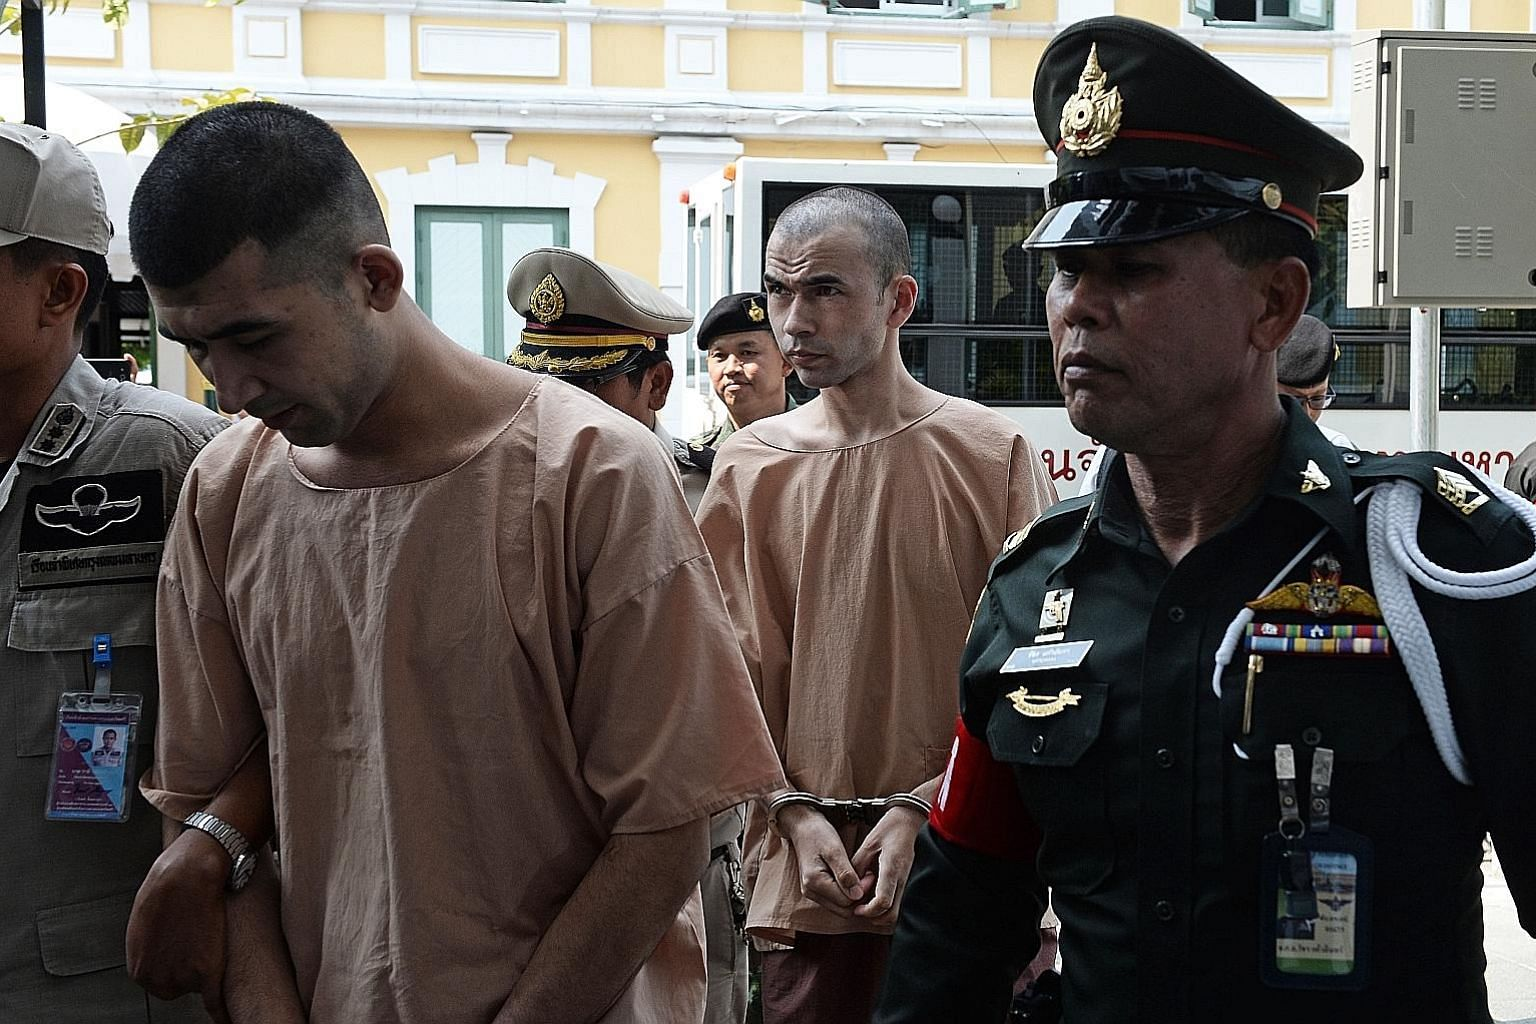 Mieraili (left) and Karadag (centre) under police escort at a military court in Bangkok yesterday. Both are Uighur Muslims. Police have issued arrest warrants for 15 other people in connection with the Aug 17 blast.